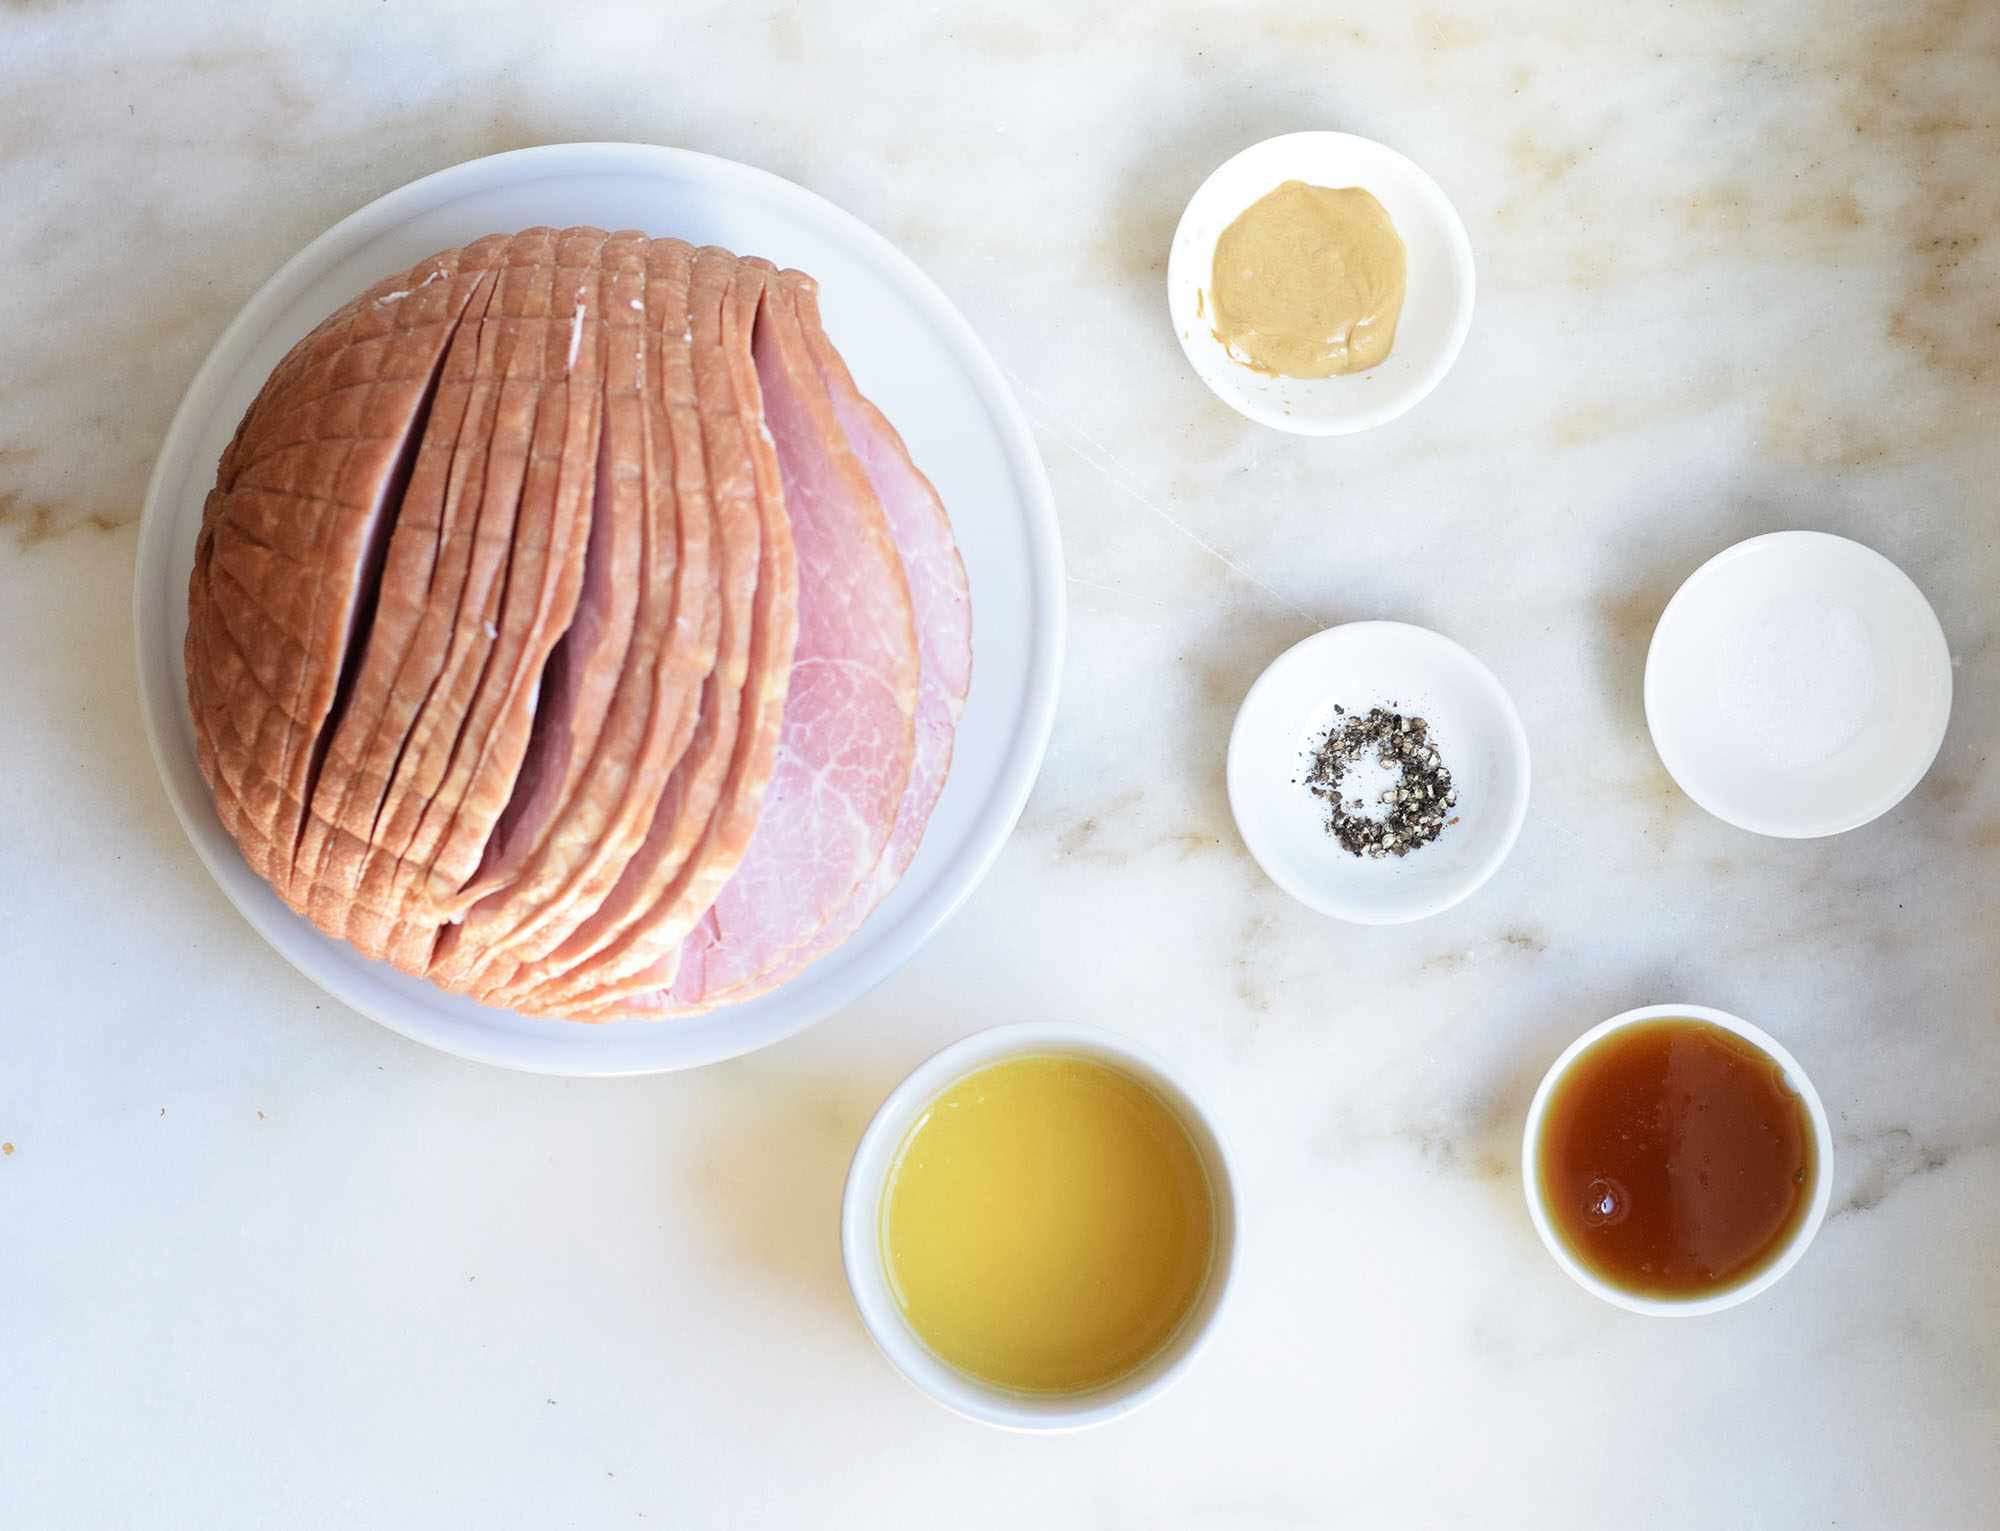 Ingredients for making a glaze for ham